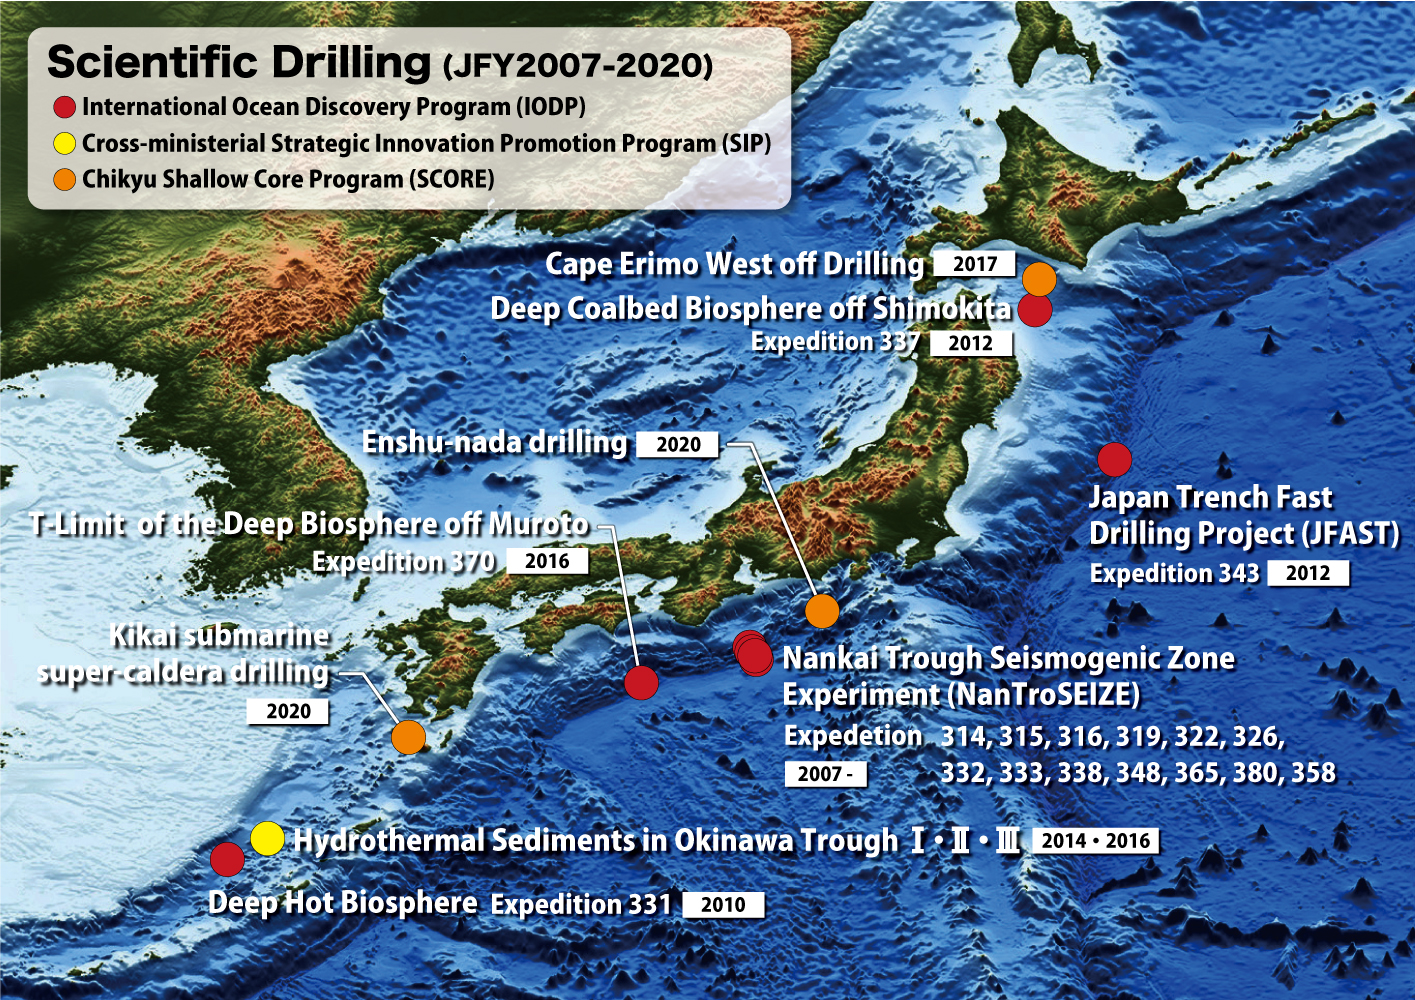 Drilling site map for Scientific drilling by D/V Chikyu